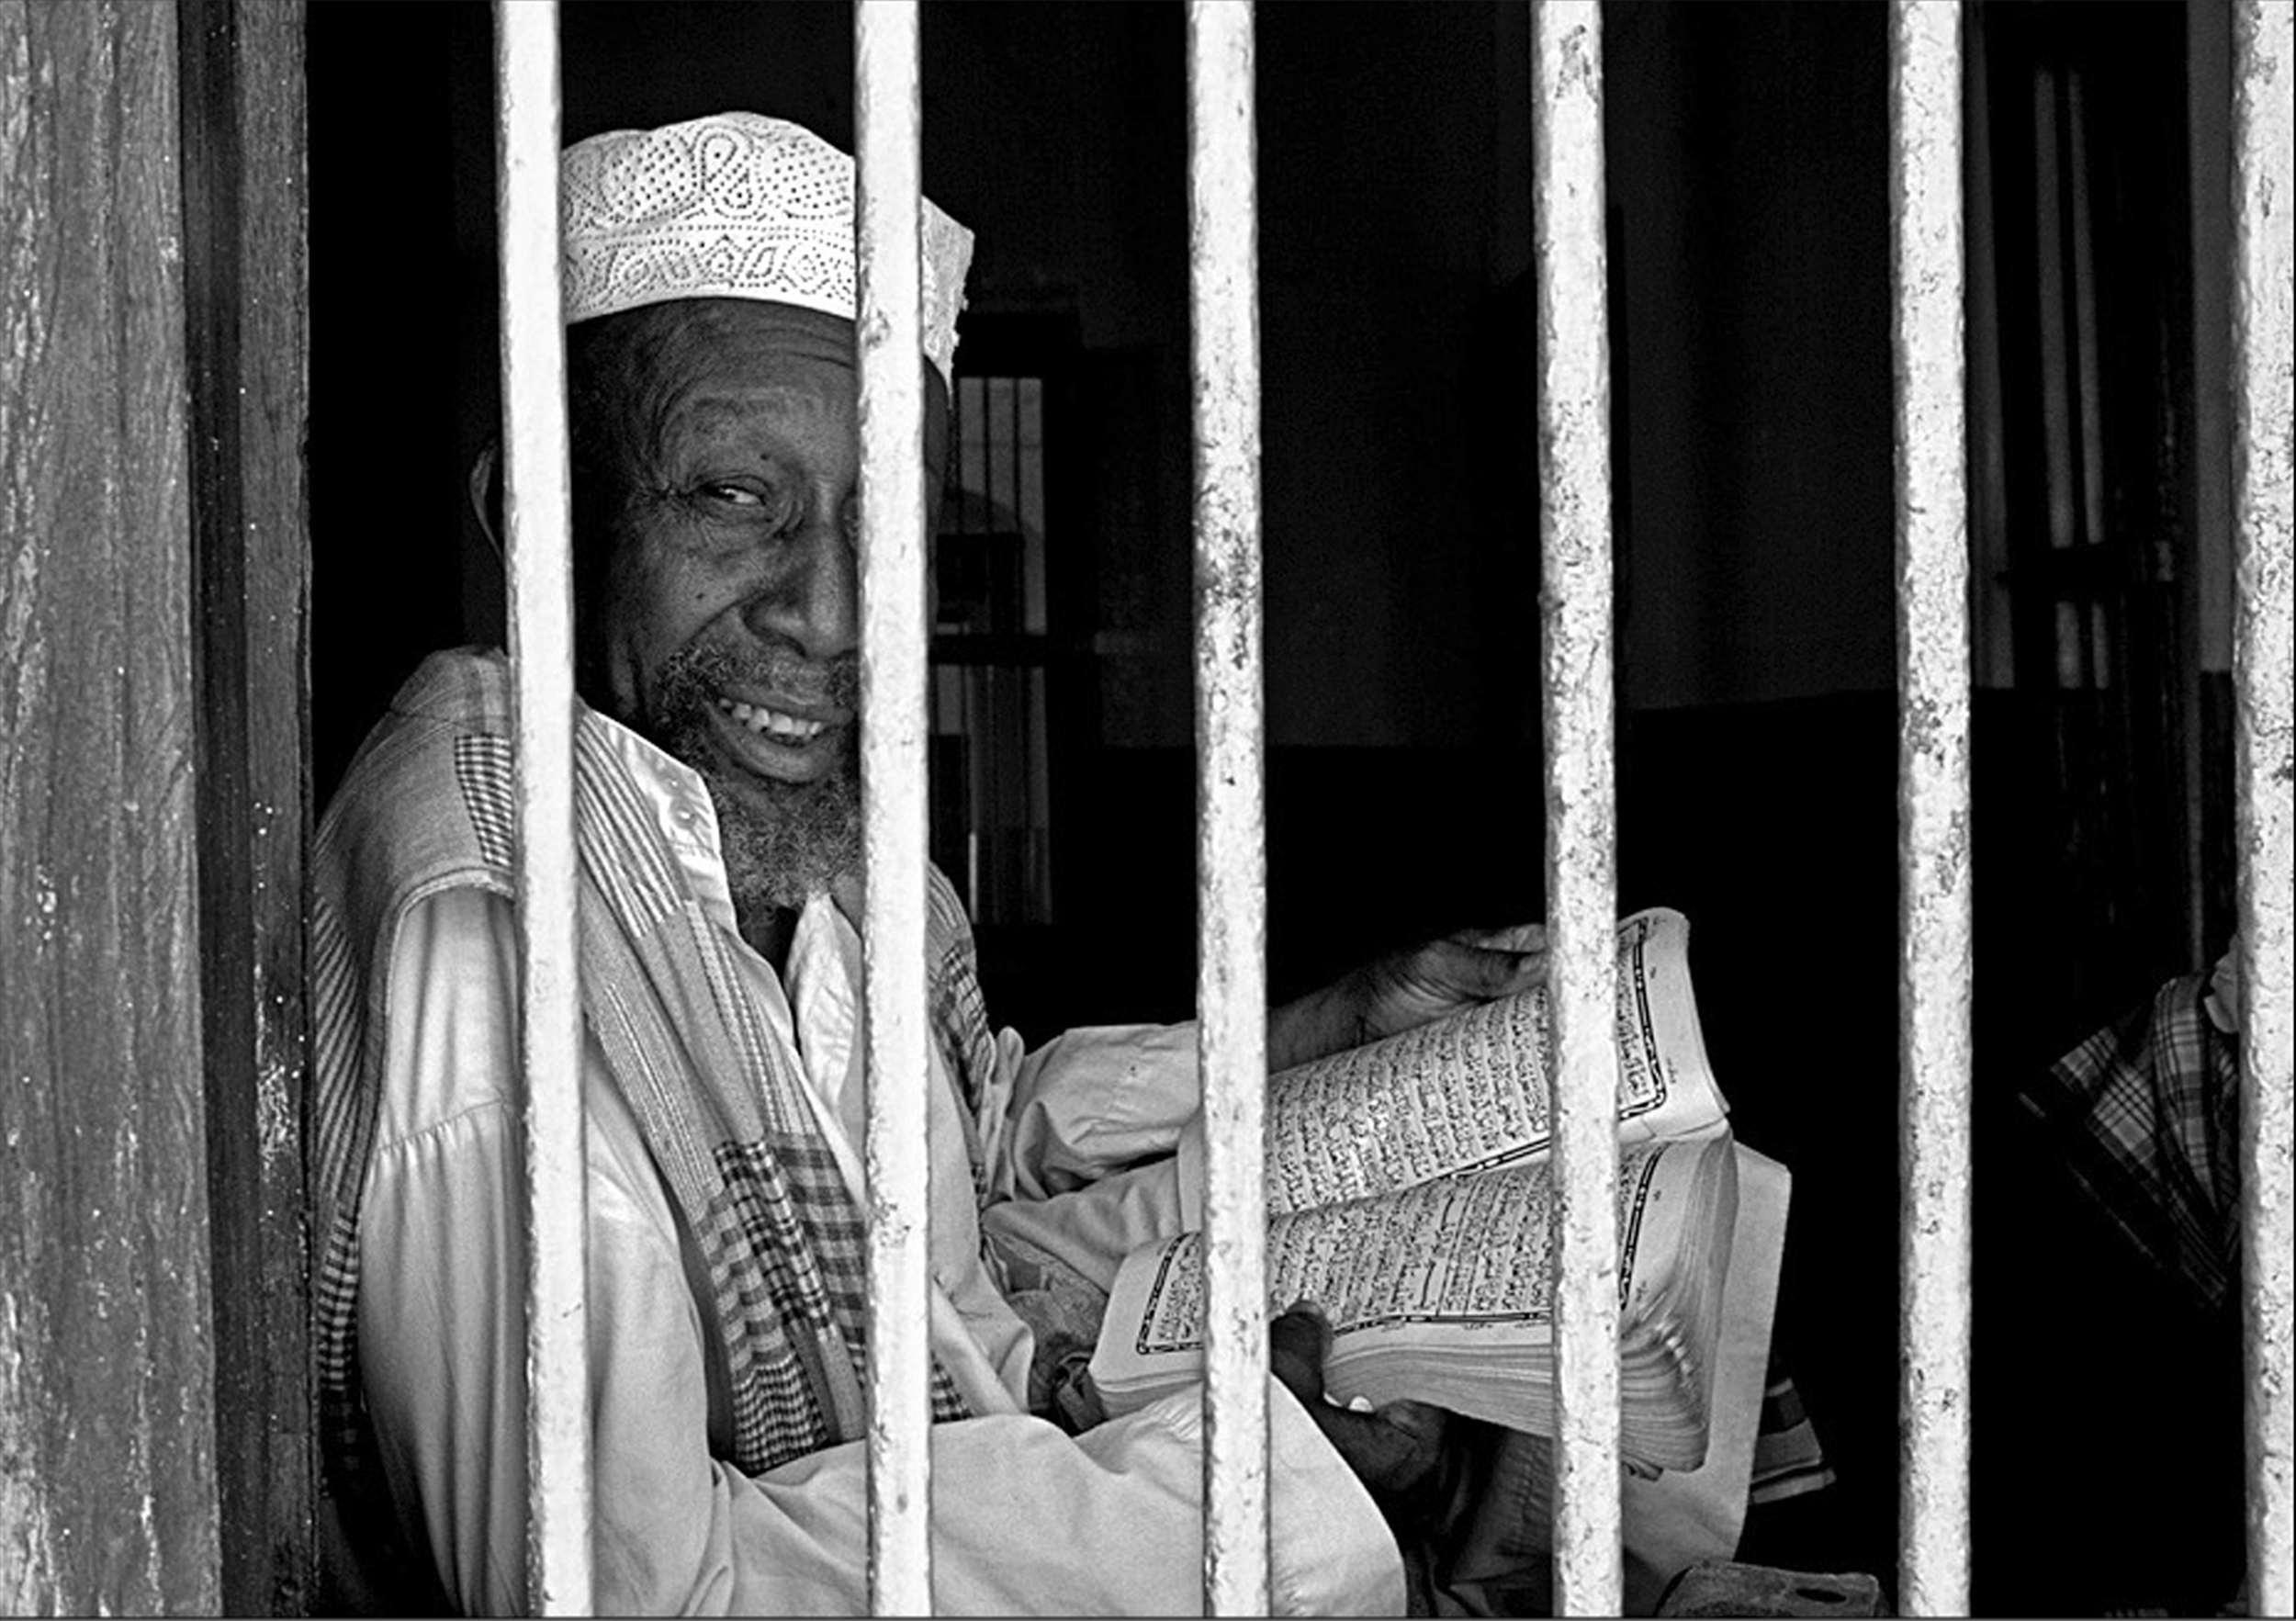 Koran Behind Bars